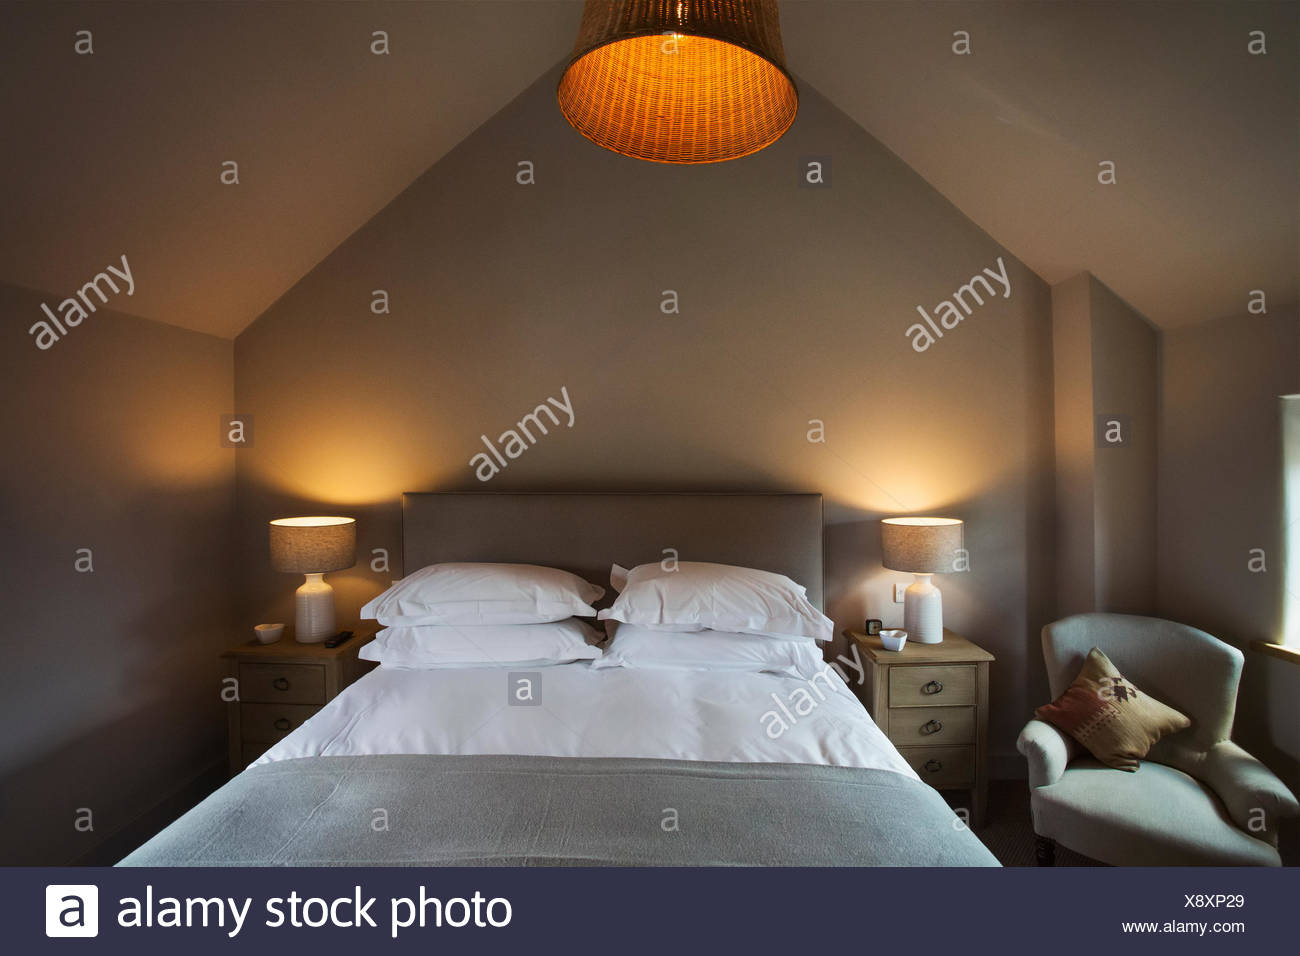 A cosy bedroom decorated in neutral colours, with a double bed and bedside lights on. Hospitality. - Stock Image